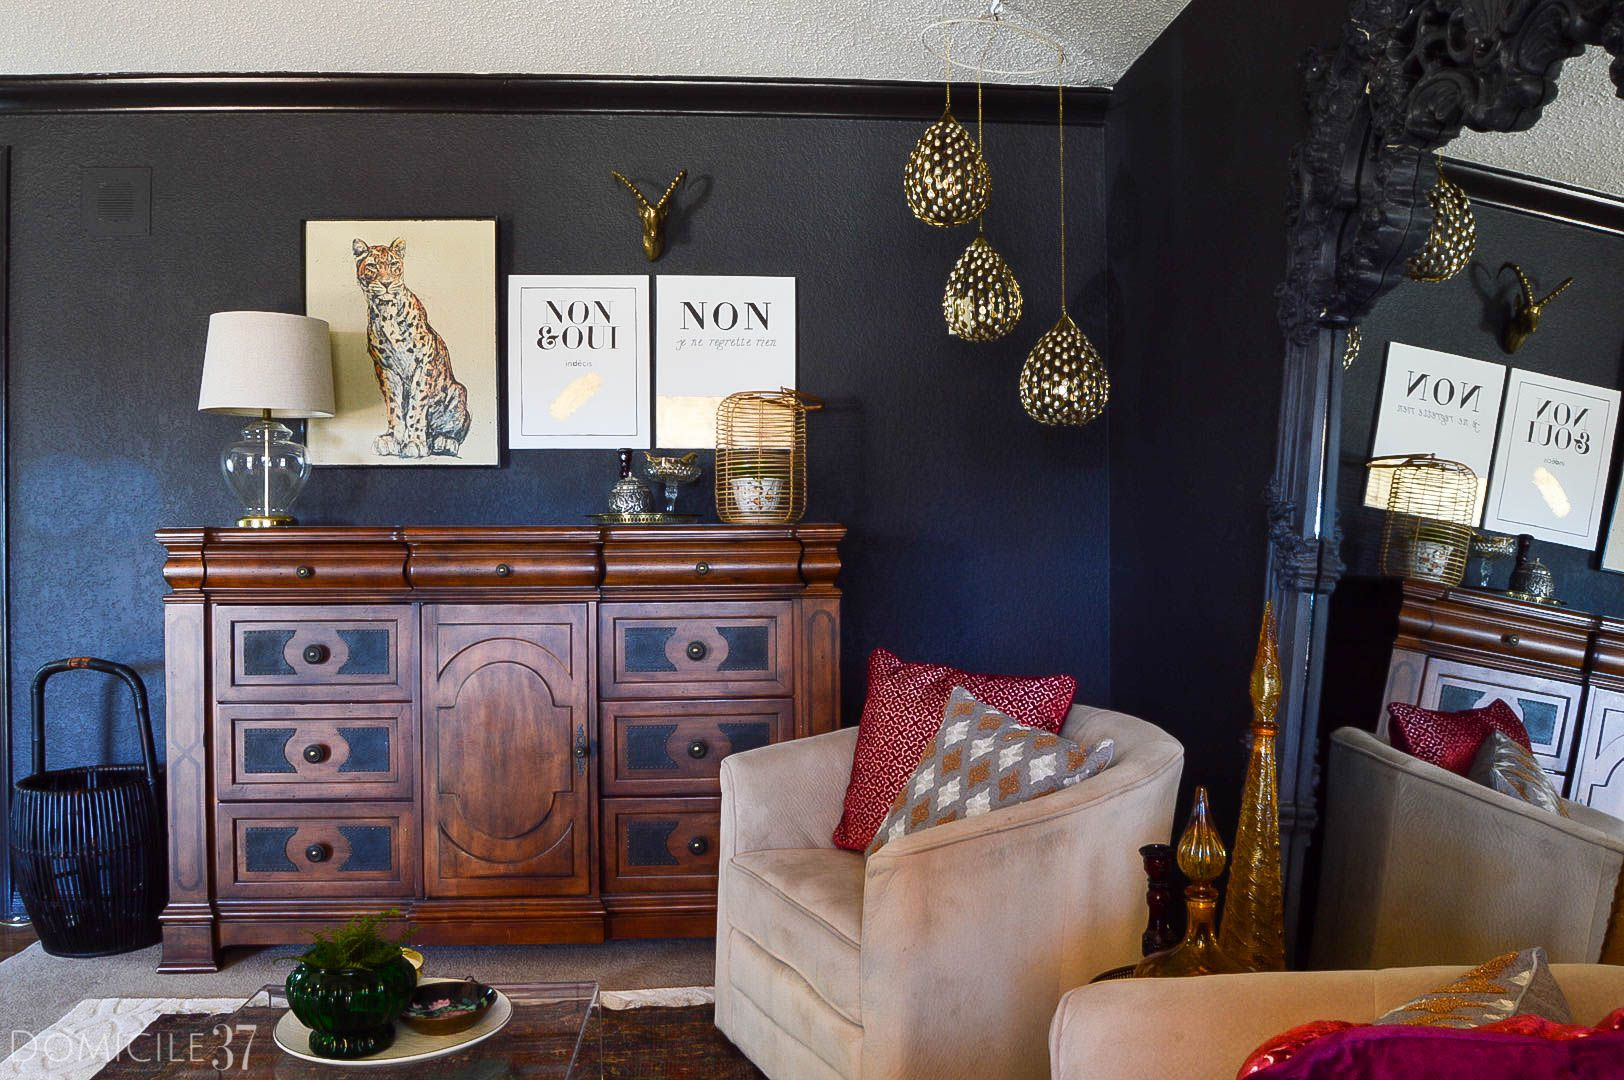 Vintage Eclectic Foyer And Sitting Room Reveal Domicile 37 Home Decor Decor Home Decor Paintings #vintage #eclectic #living #room